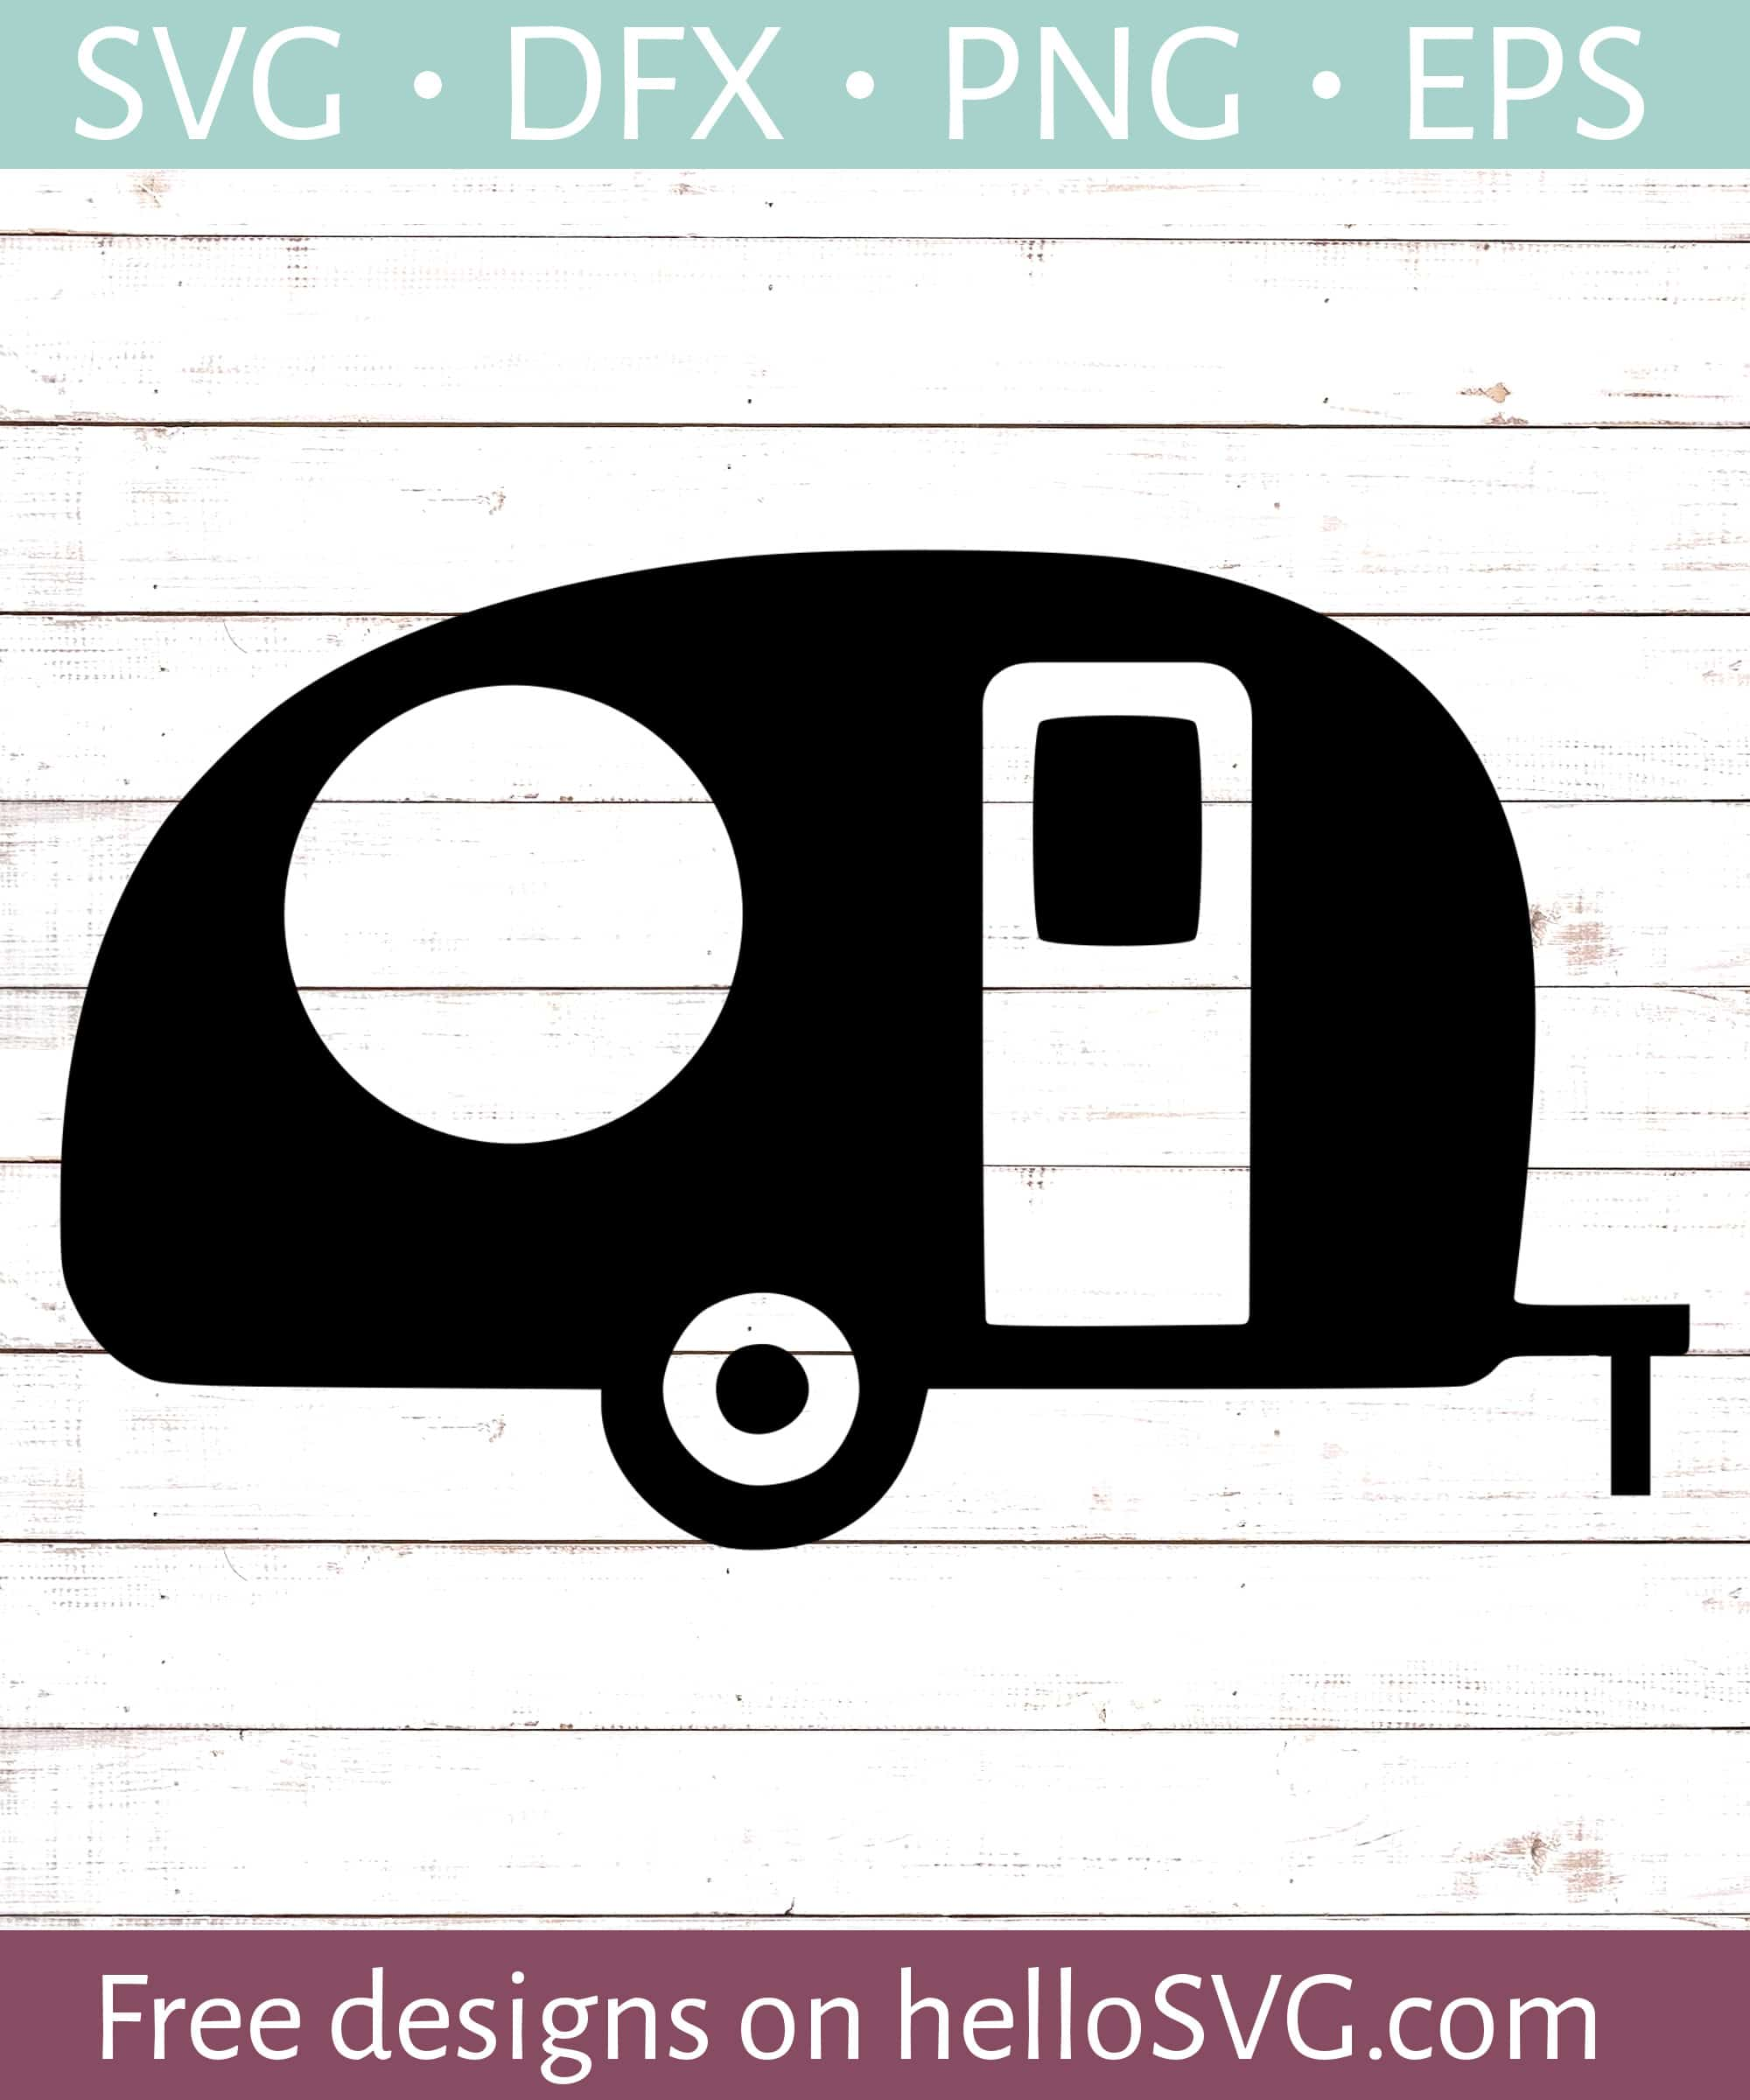 Rv Svg : Camper, Monogram, Files, HelloSVG.com